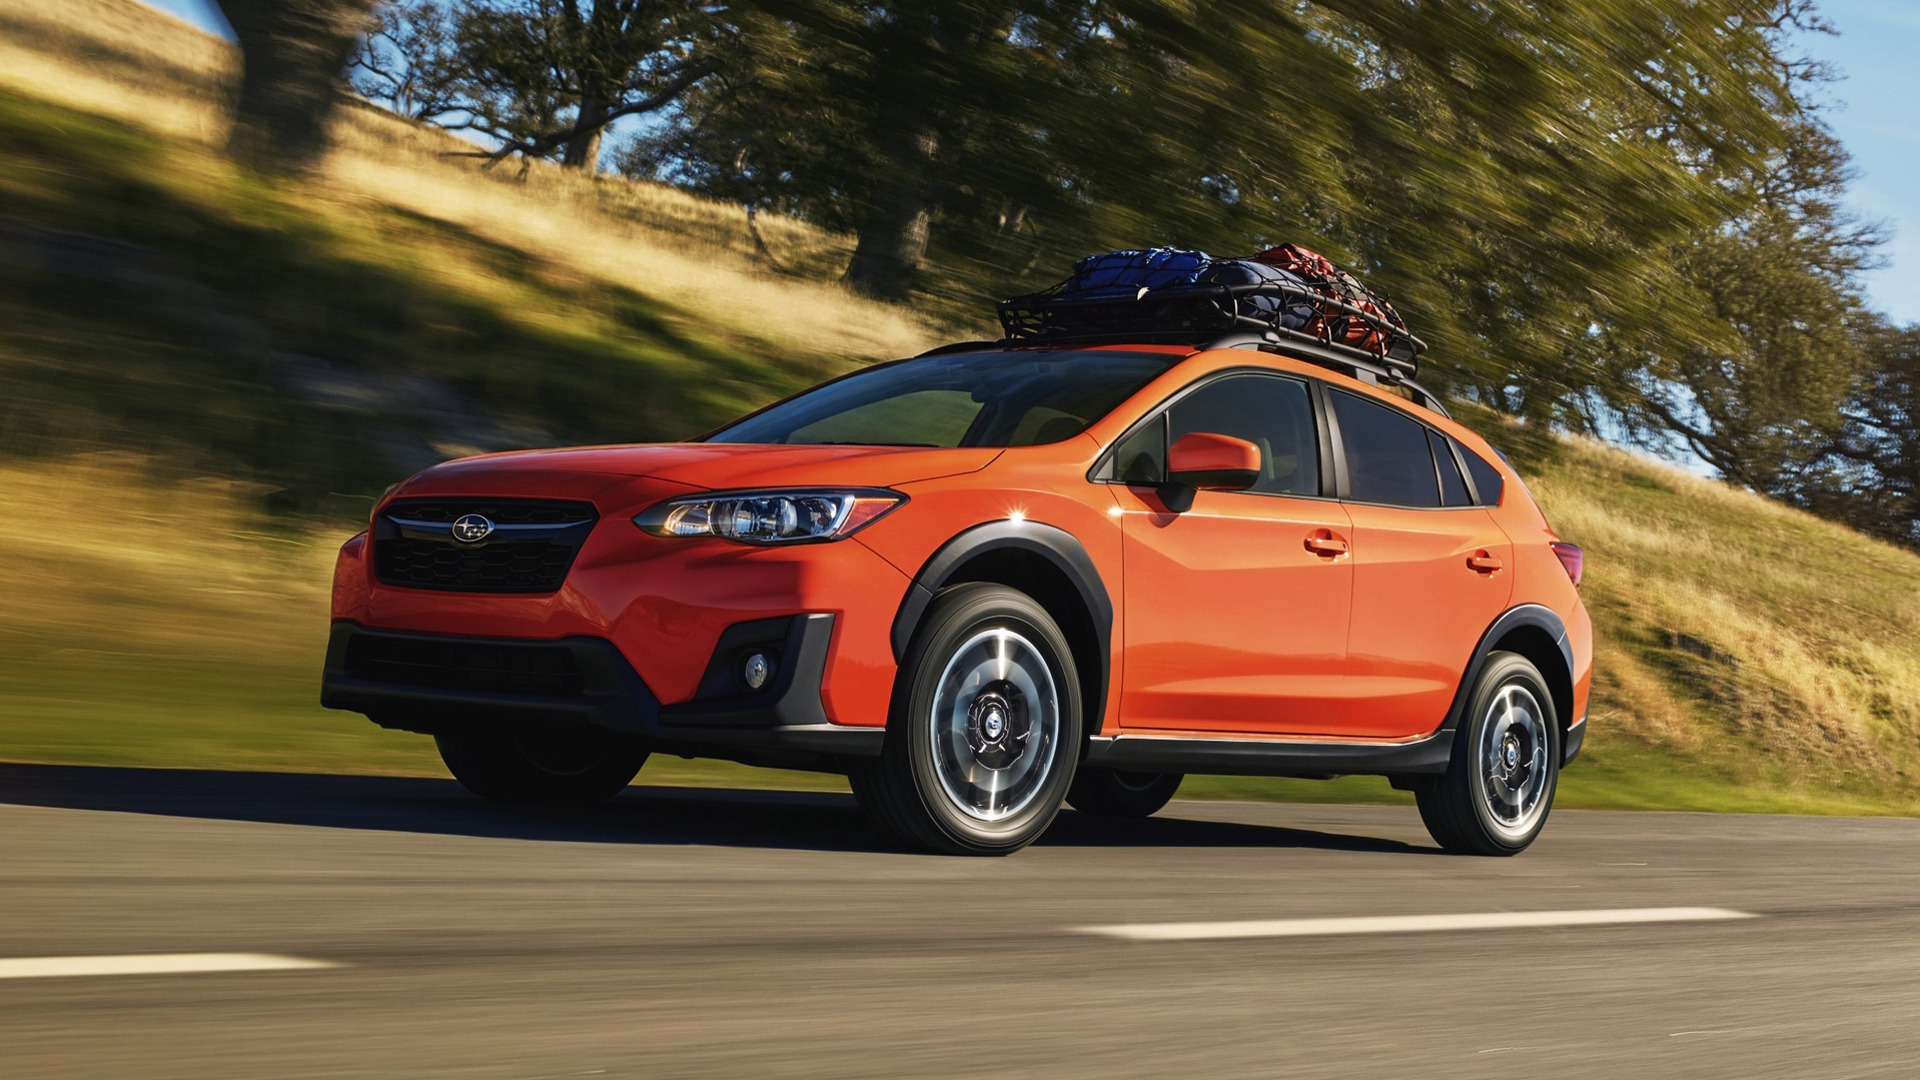 2018 subaru crosstrek starts at 22 710 140 more than last year. Black Bedroom Furniture Sets. Home Design Ideas